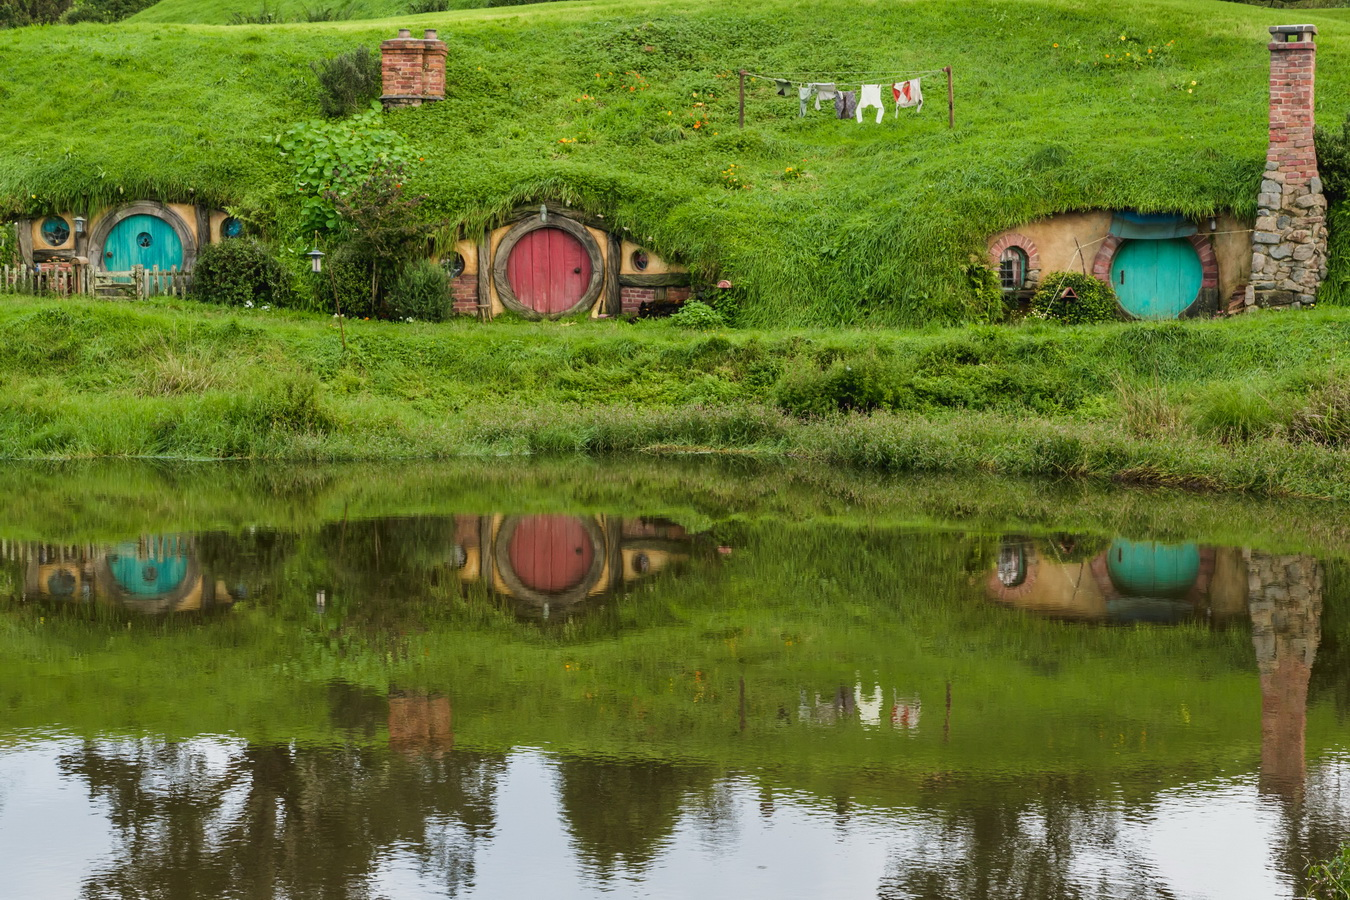 houses,reflection,lake,The Hobbiton, The Shire,Хоббитшир, Удел, Хоббитания, Заселье, Край,Matamata, North Island ,New Zealand